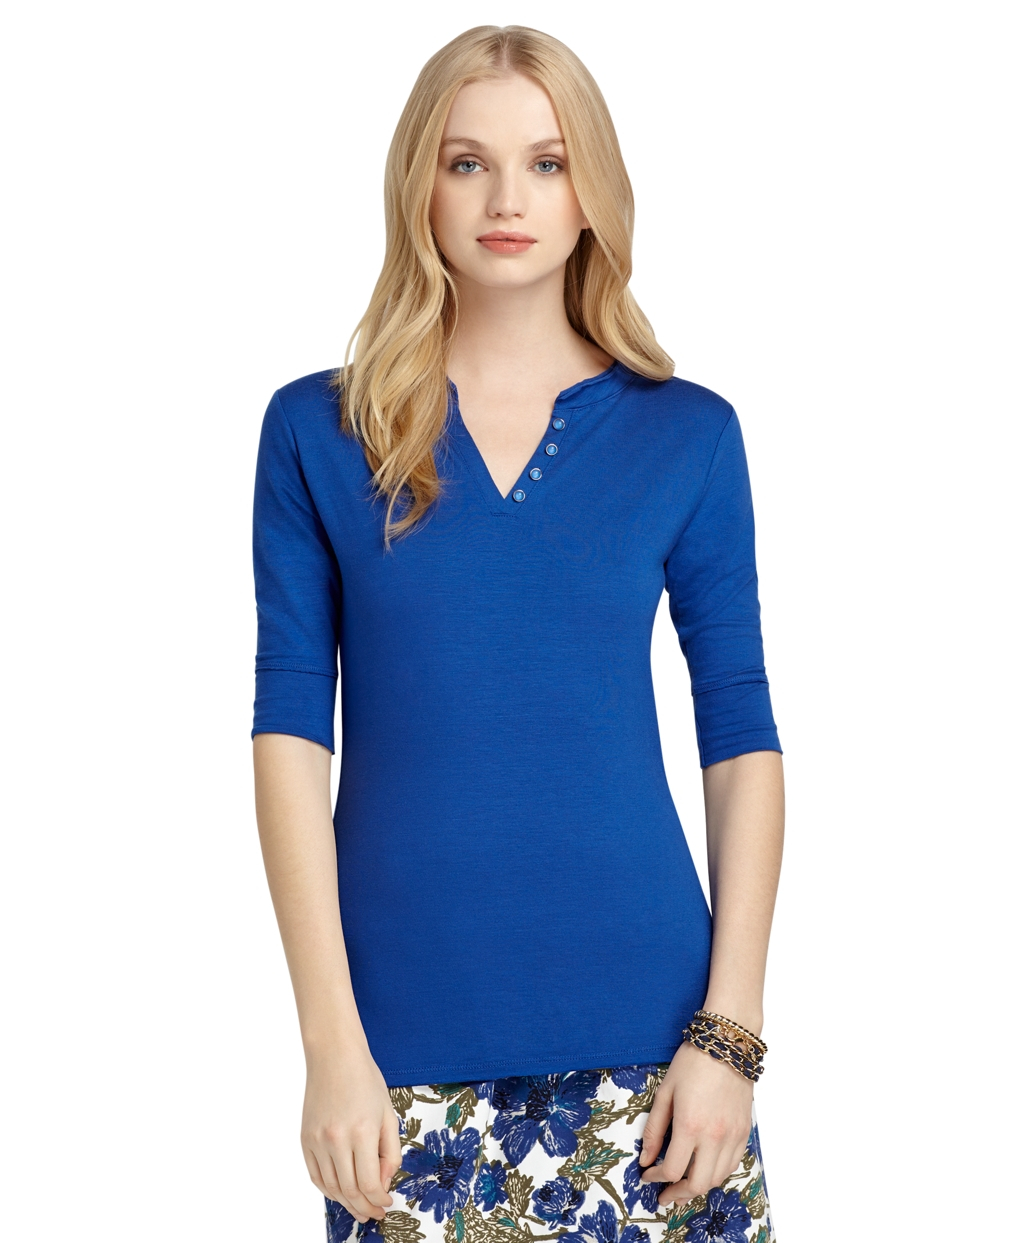 Lyst brooks brothers elbow length tee in blue for Elbow length t shirts women s